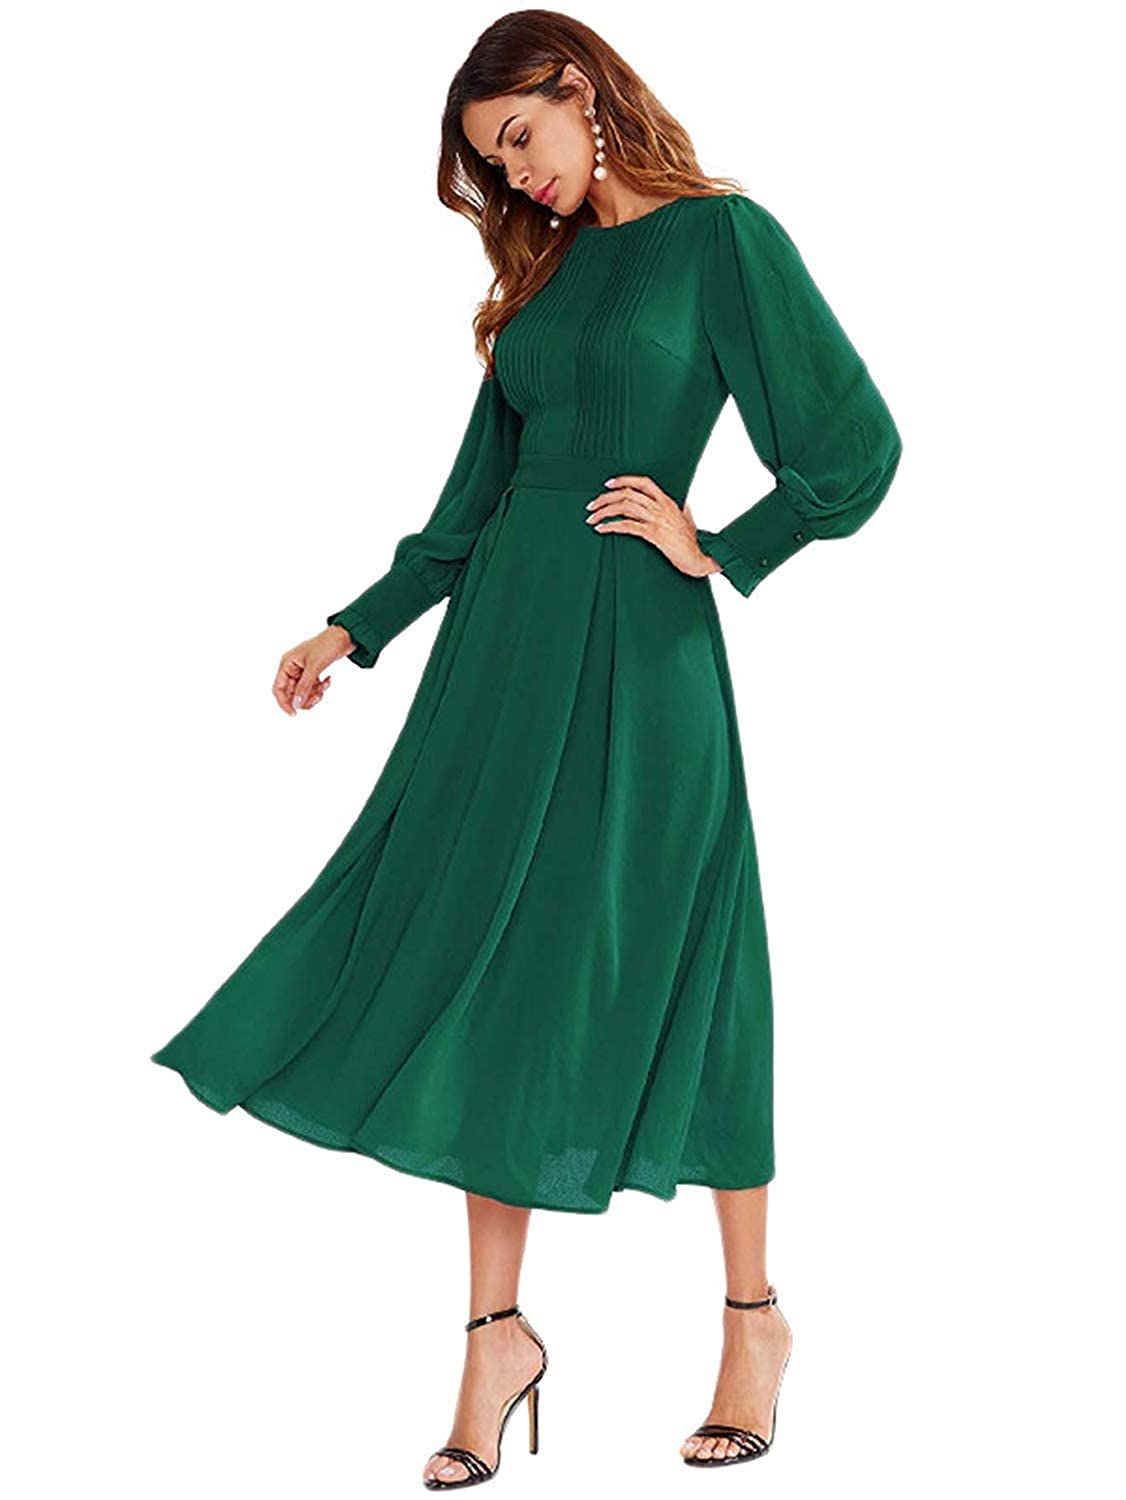 500 Vintage Style Dresses for Sale | Vintage Inspired Dresses Milumia Womens Elegant Frilled Long Sleeve Pleated Fit & Flare Dress $36.99 AT vintagedancer.com